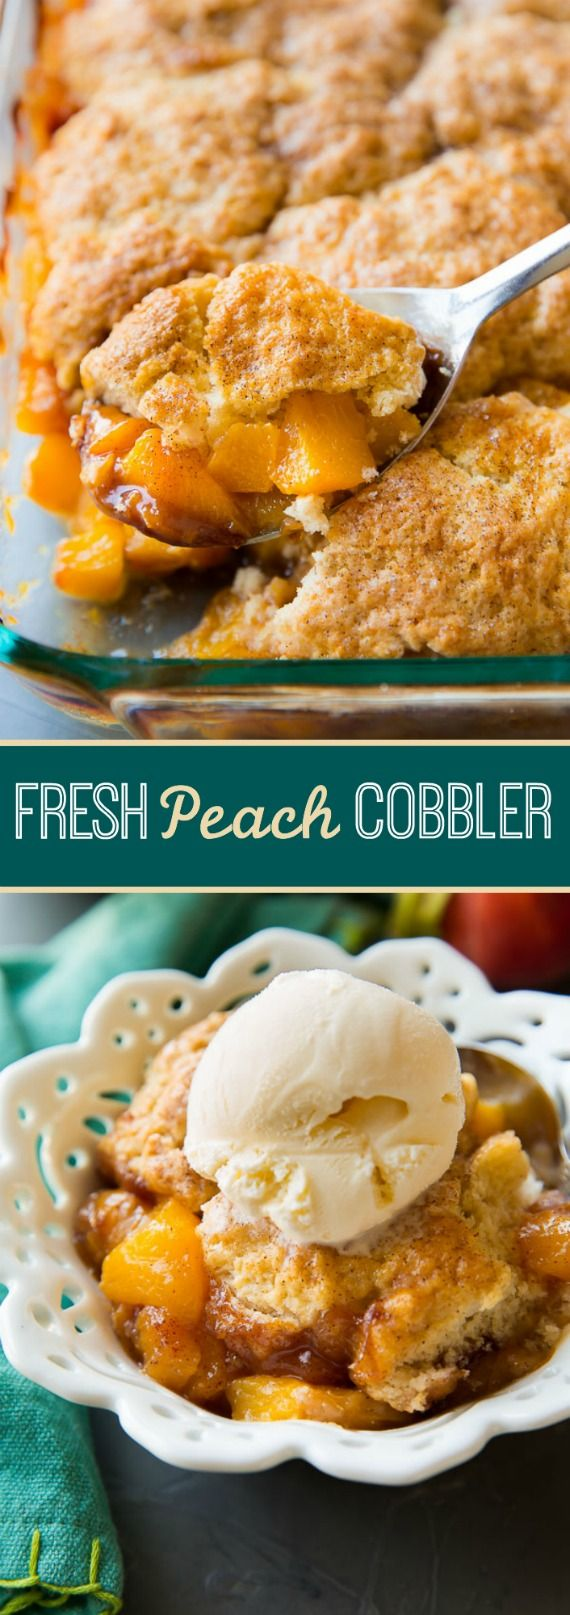 Perfectly sweetened and comforting with fresh peaches and a golden biscuit topping! Peach cobbler recipe on sallysbakingaddiction.com